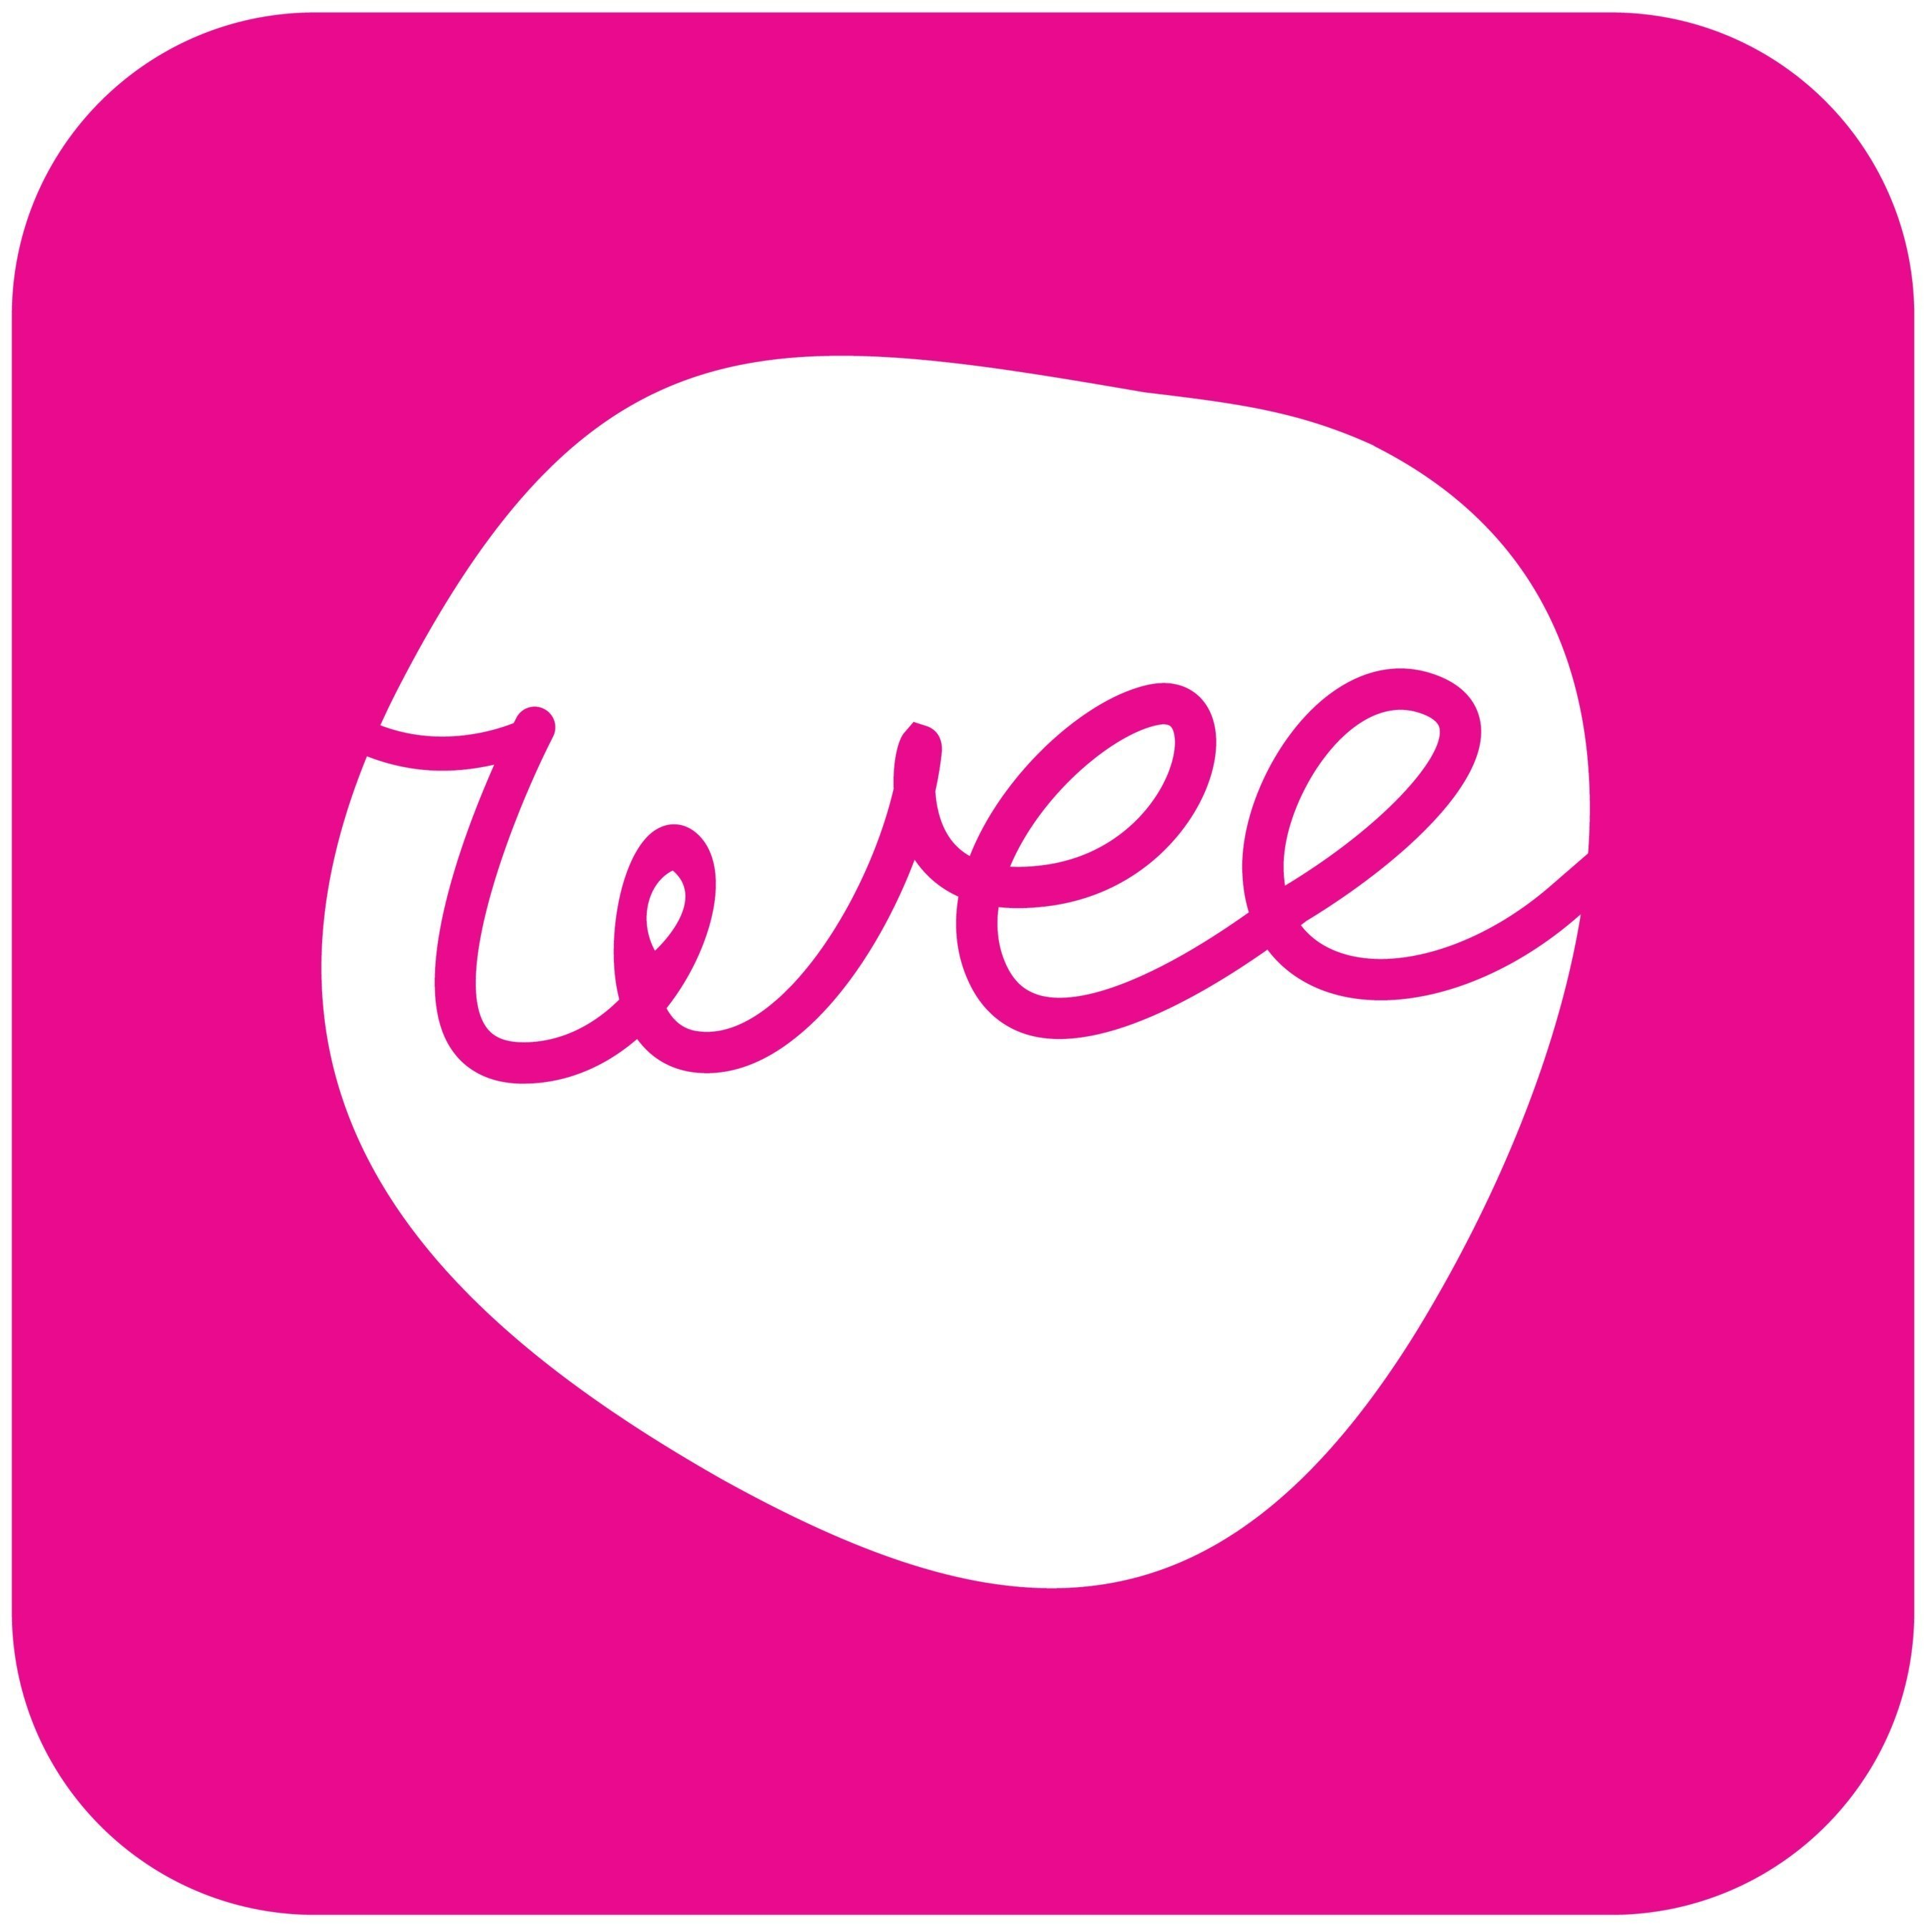 weeSPIN is the app that combines music streaming services with social media so you can build playlists that sound like you.